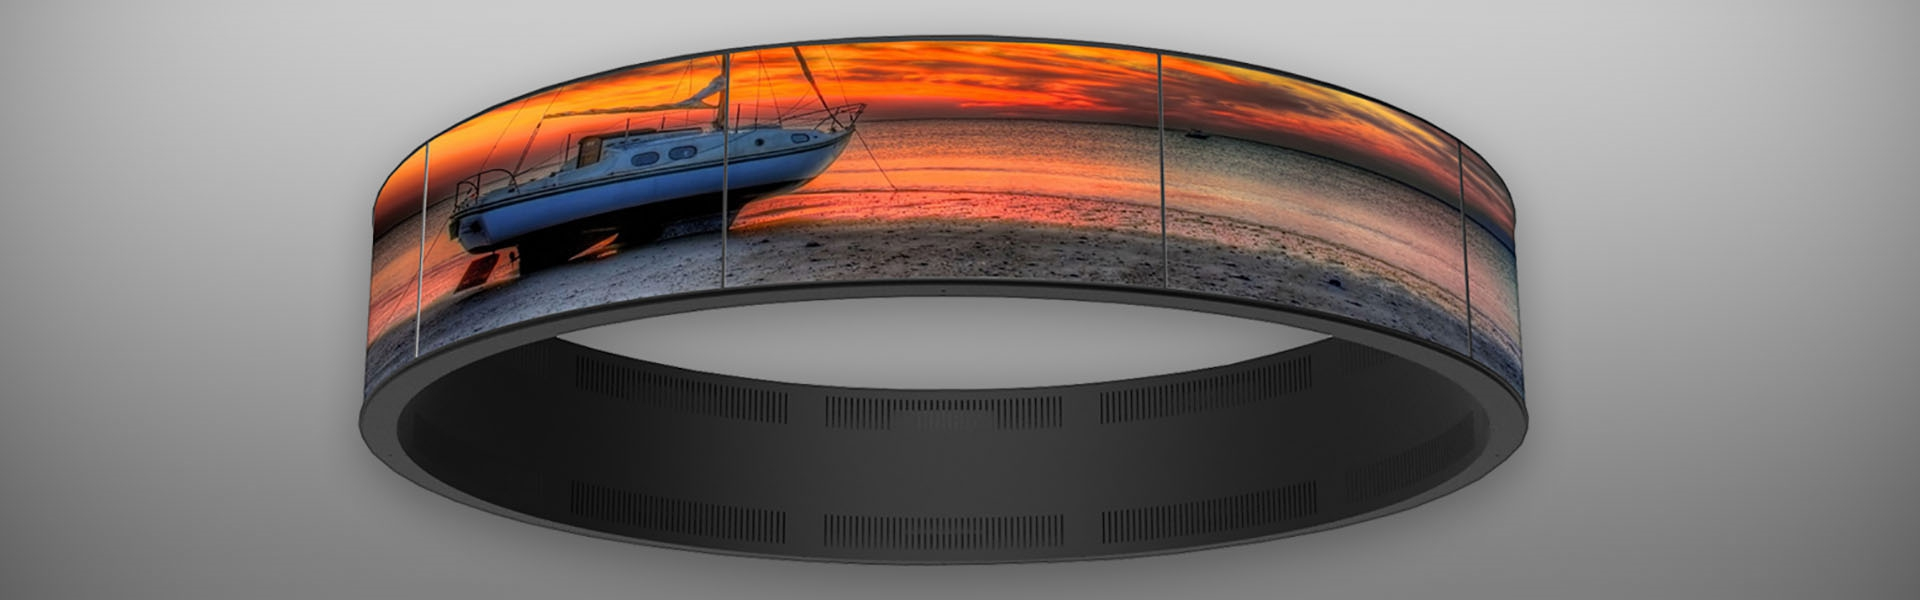 CUSTOM DESIGNED AND MANUFACTURED RING-SHAPED VIDEO WALL